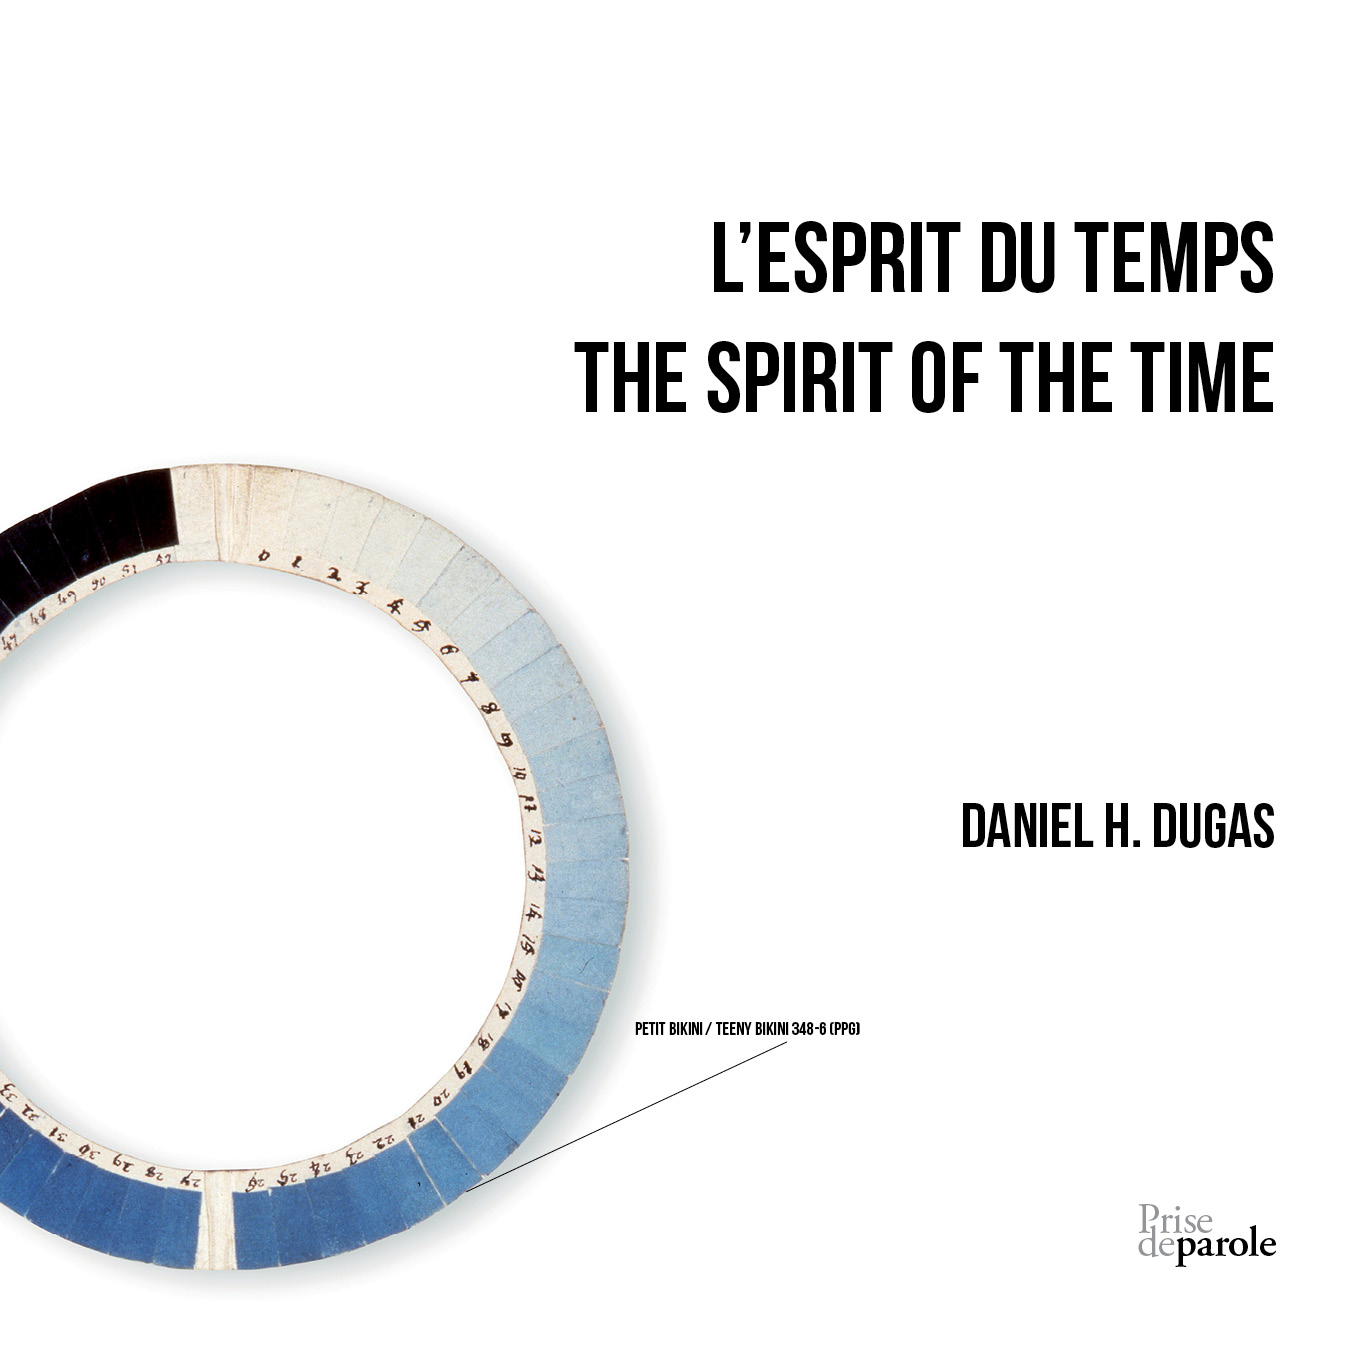 Vignette du livre The spirit of the time